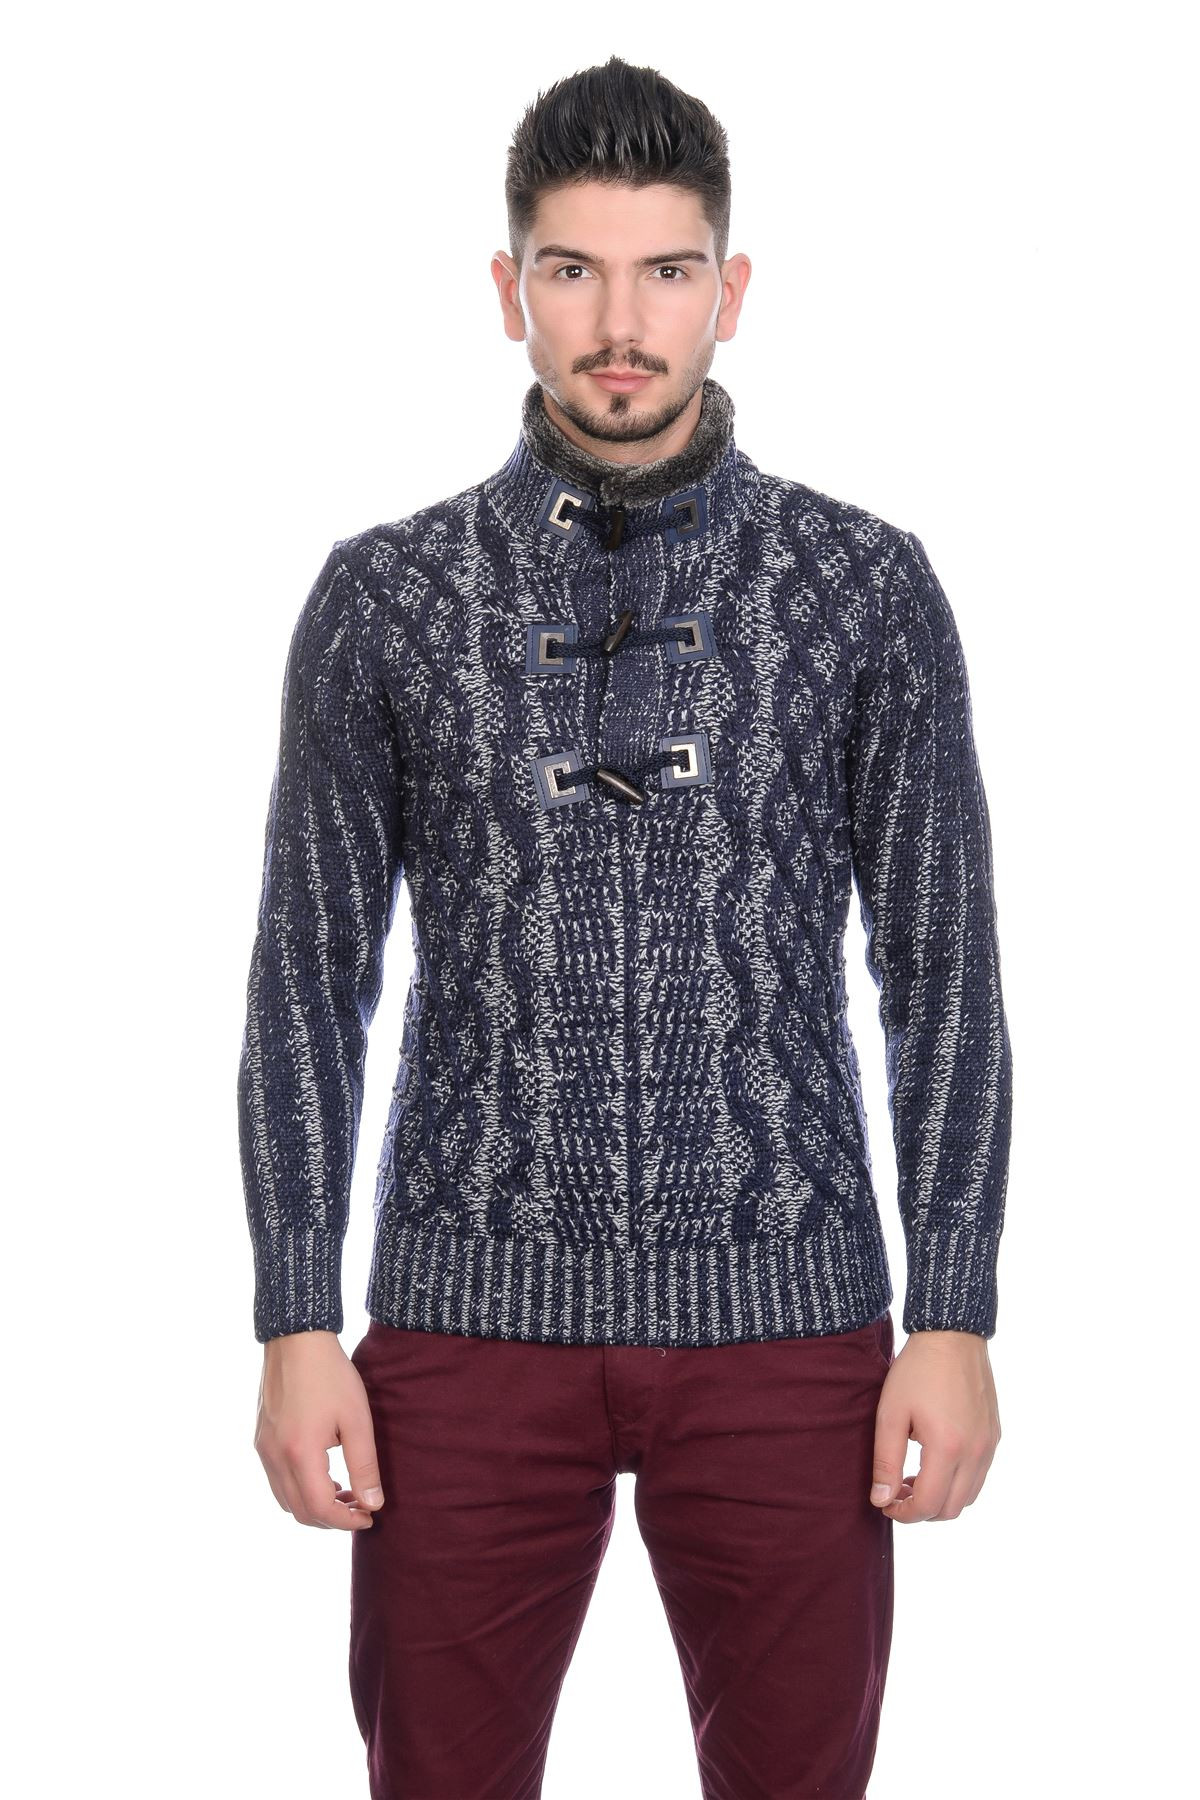 Mens Cable Knit Cardigan Best Of Bnwt Mens Designer Cable Knit Jumper Cardigan Sweater with Of New 45 Models Mens Cable Knit Cardigan